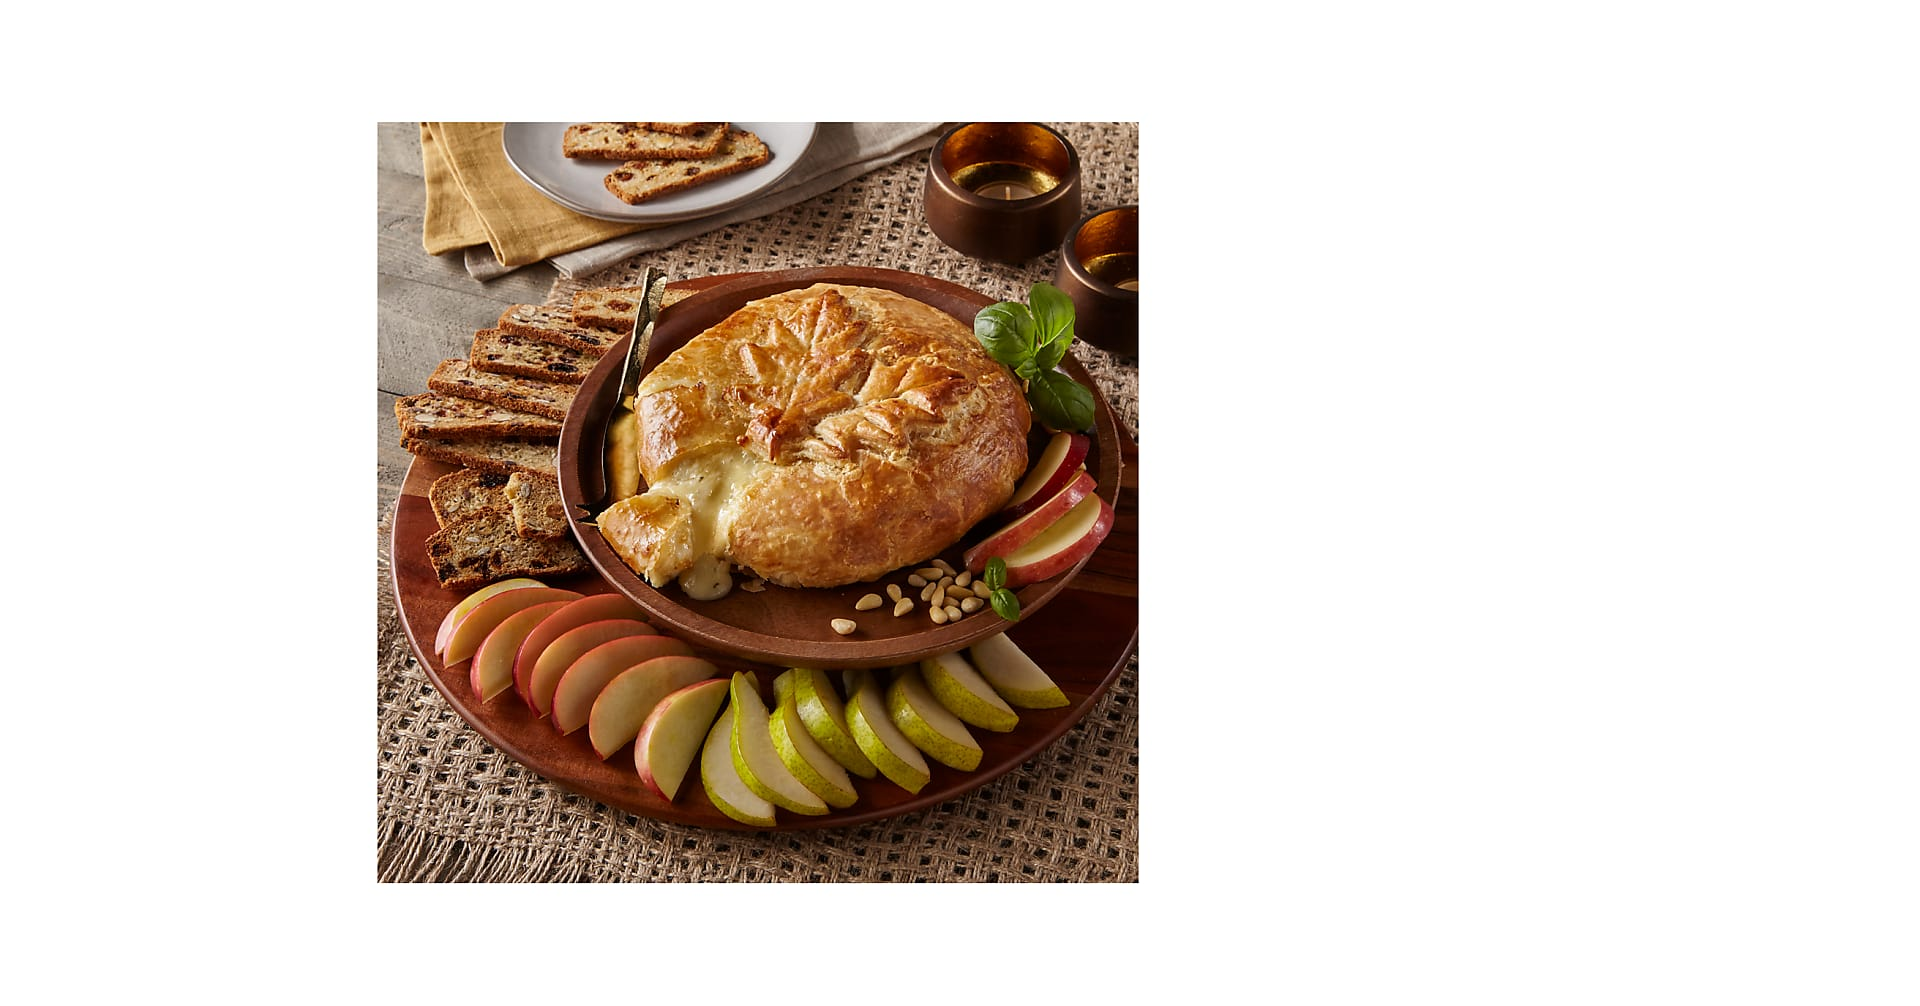 Baked Brie Garlic, Basil and Pine Nut - Image 1 Of 2